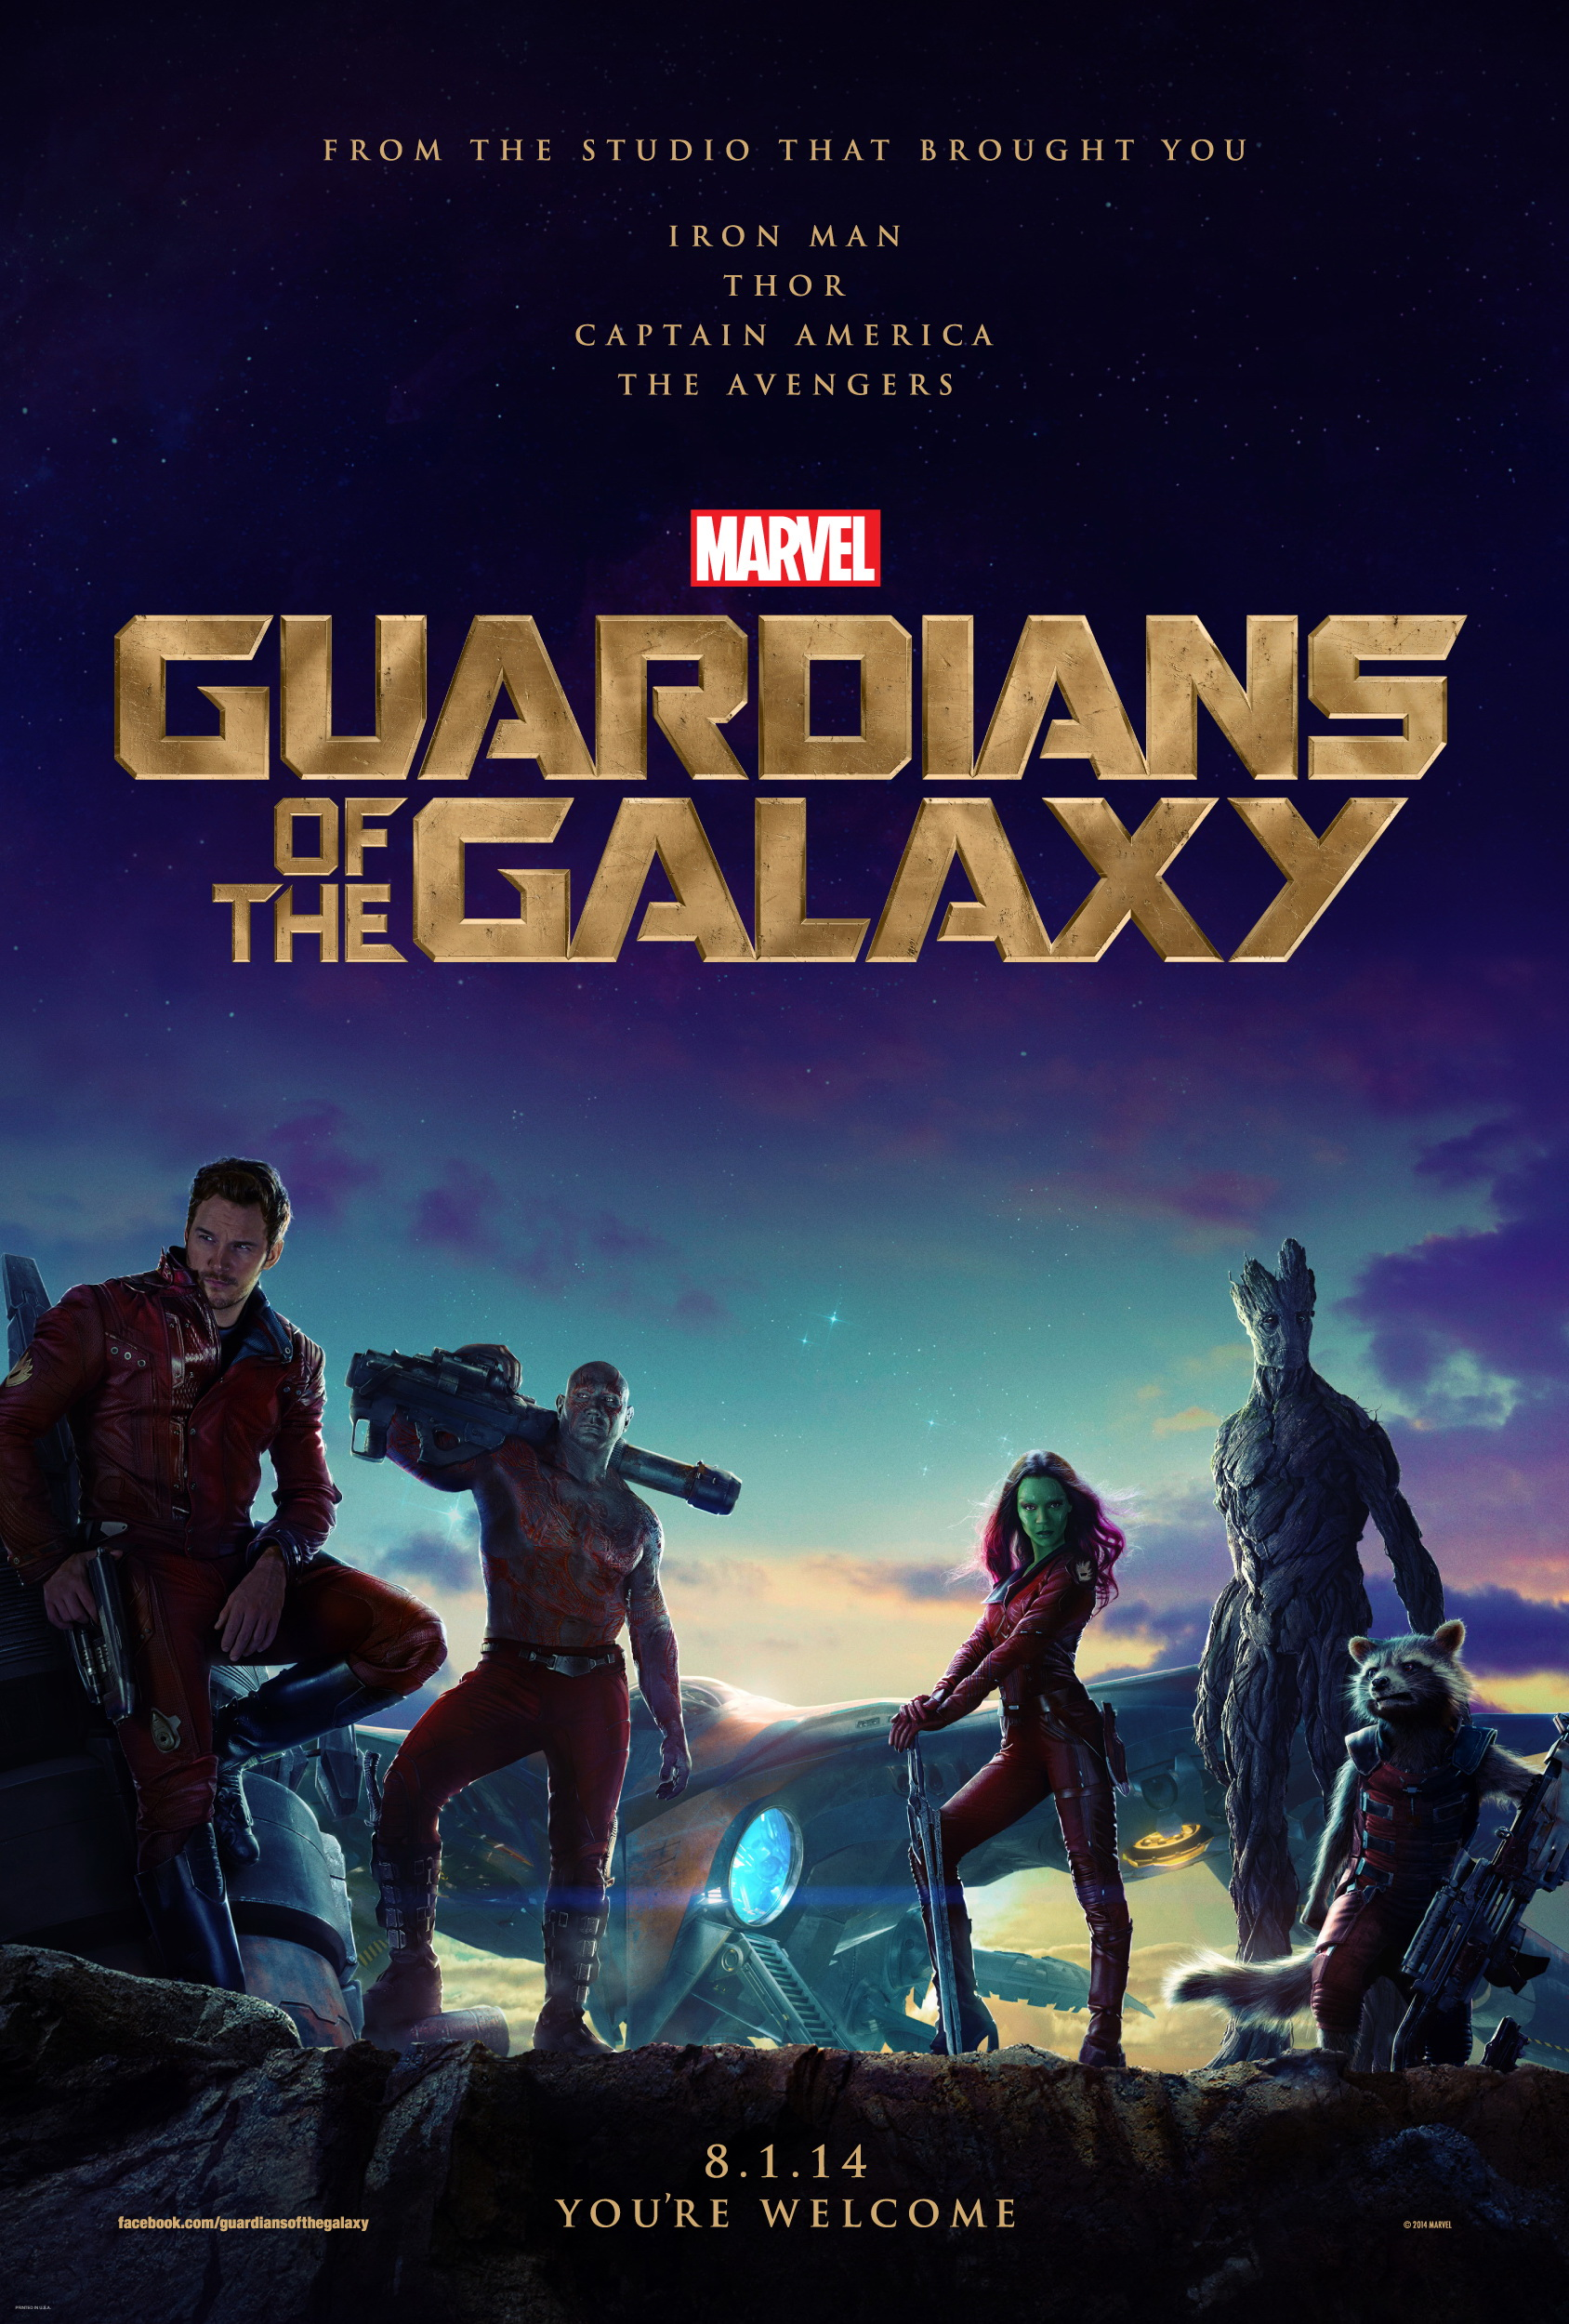 Top Wallpaper Movie Guardians The Galaxy - Guardians-of-the-Galaxy-Poster-Wallpaper  Picture_1008961.jpg